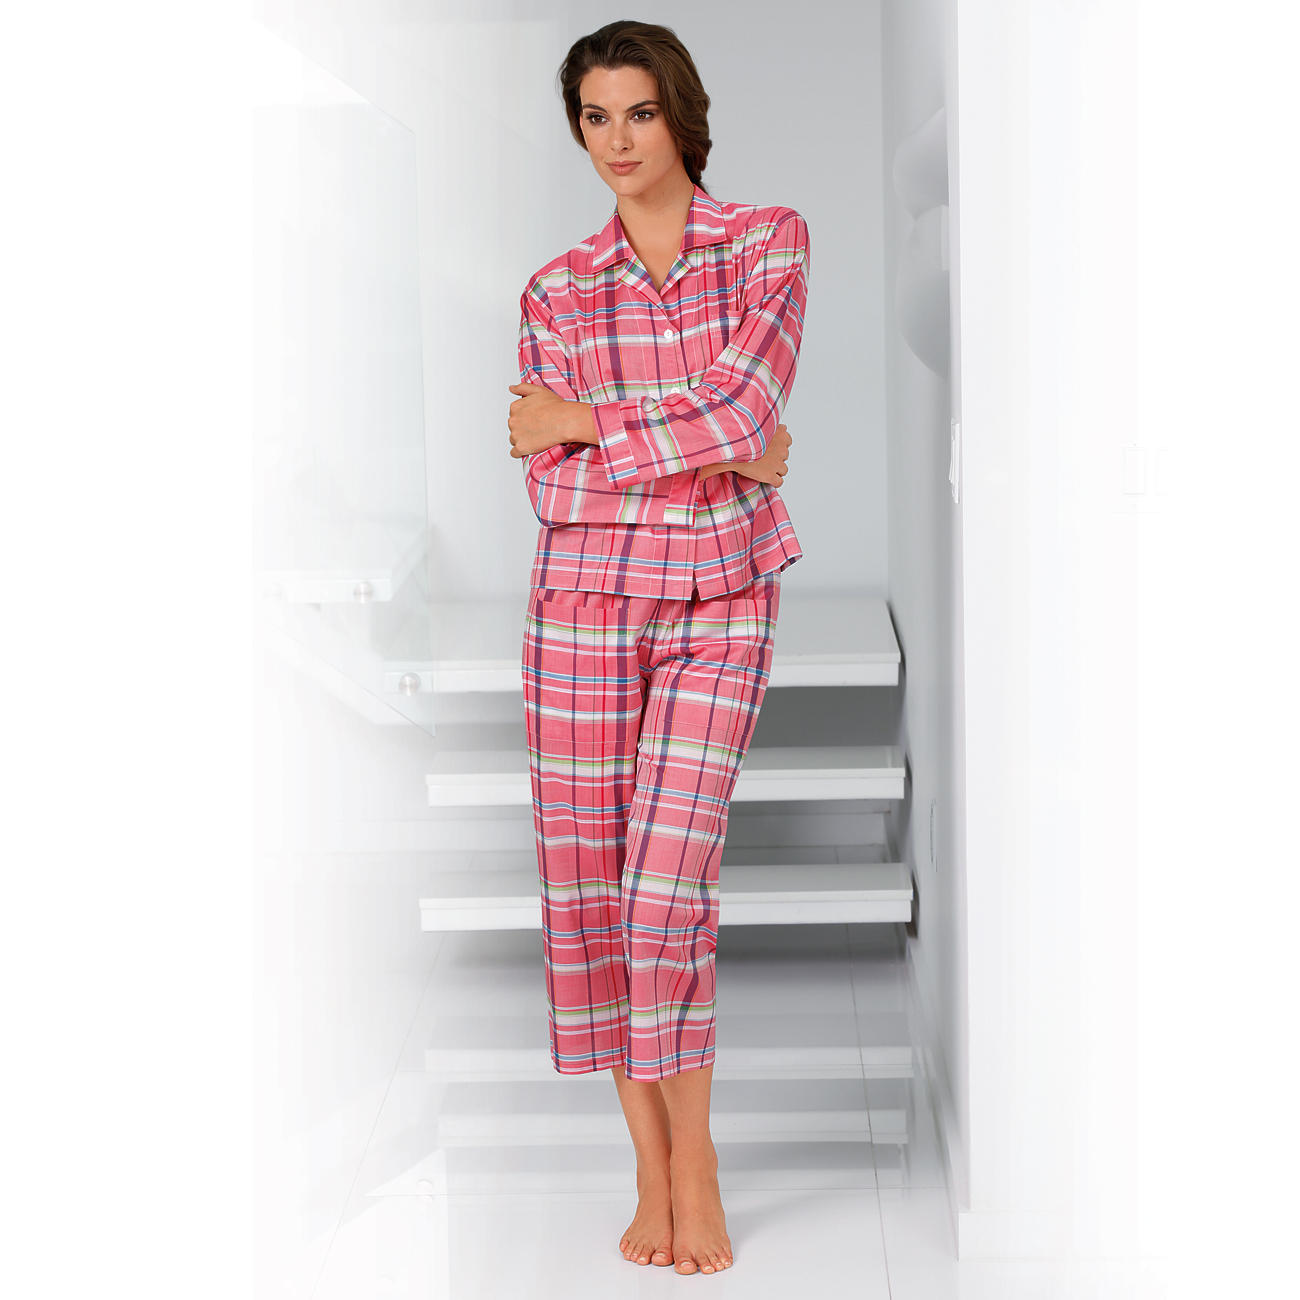 Pyjama novila en carreaux rose blanc pas cher pro idee for Pyjama carreaux